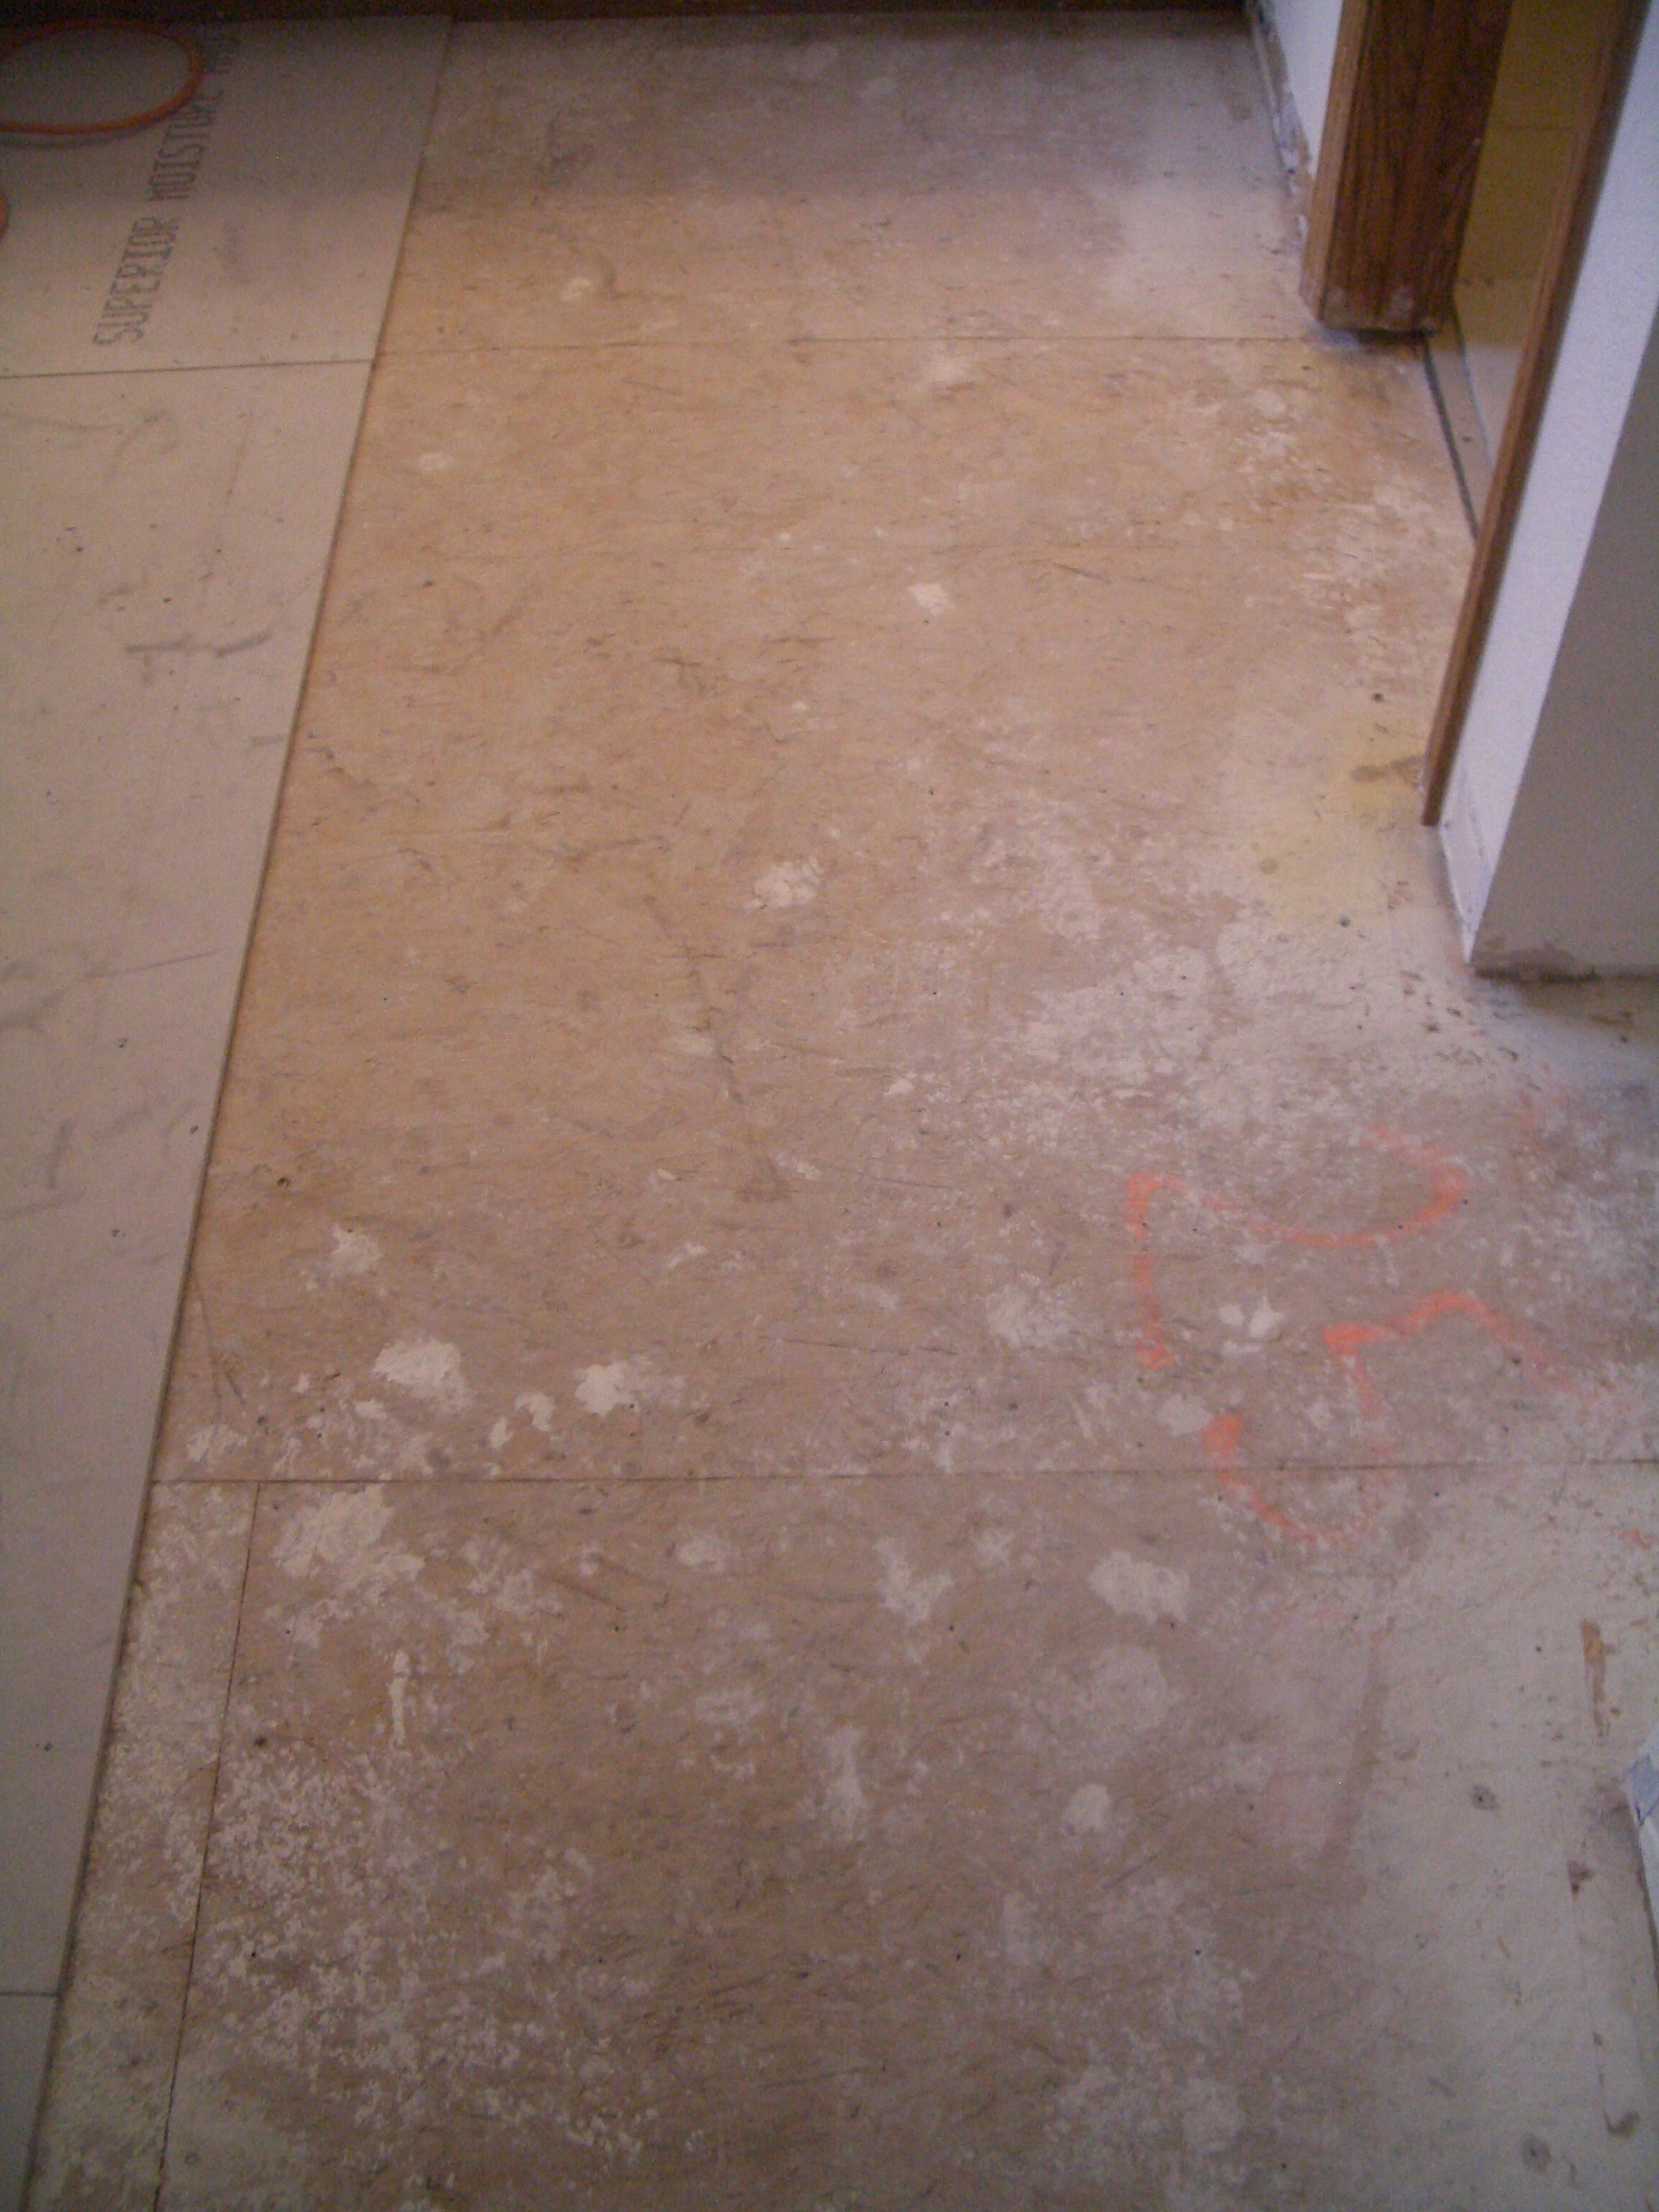 How to install cement backerboard for floor tile dry fitting backerboard on floor dailygadgetfo Image collections